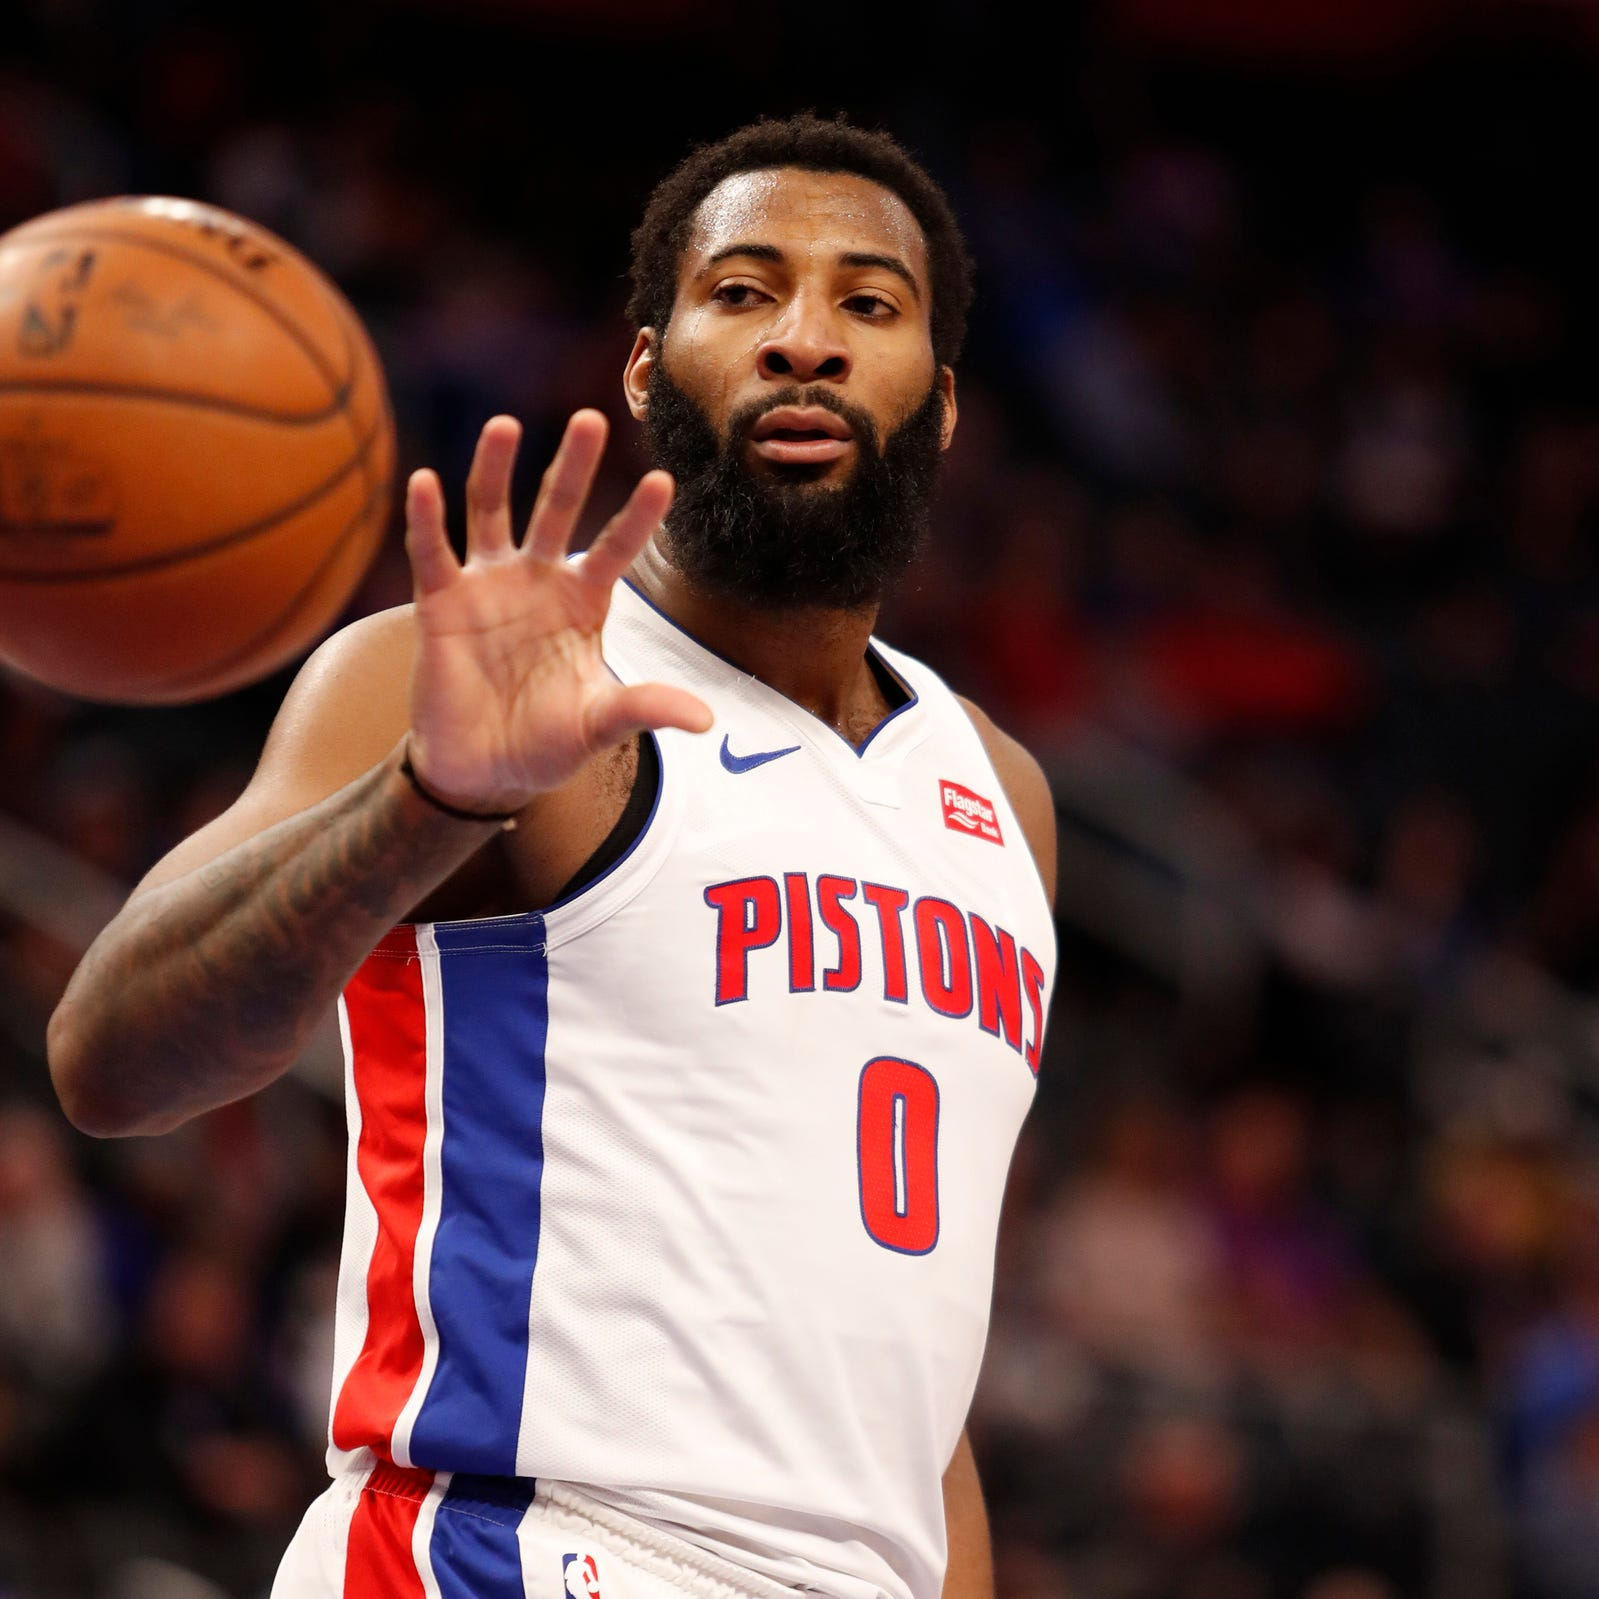 Detroit Pistons erase 22-point deficit (!) to keep playoff hopes alive